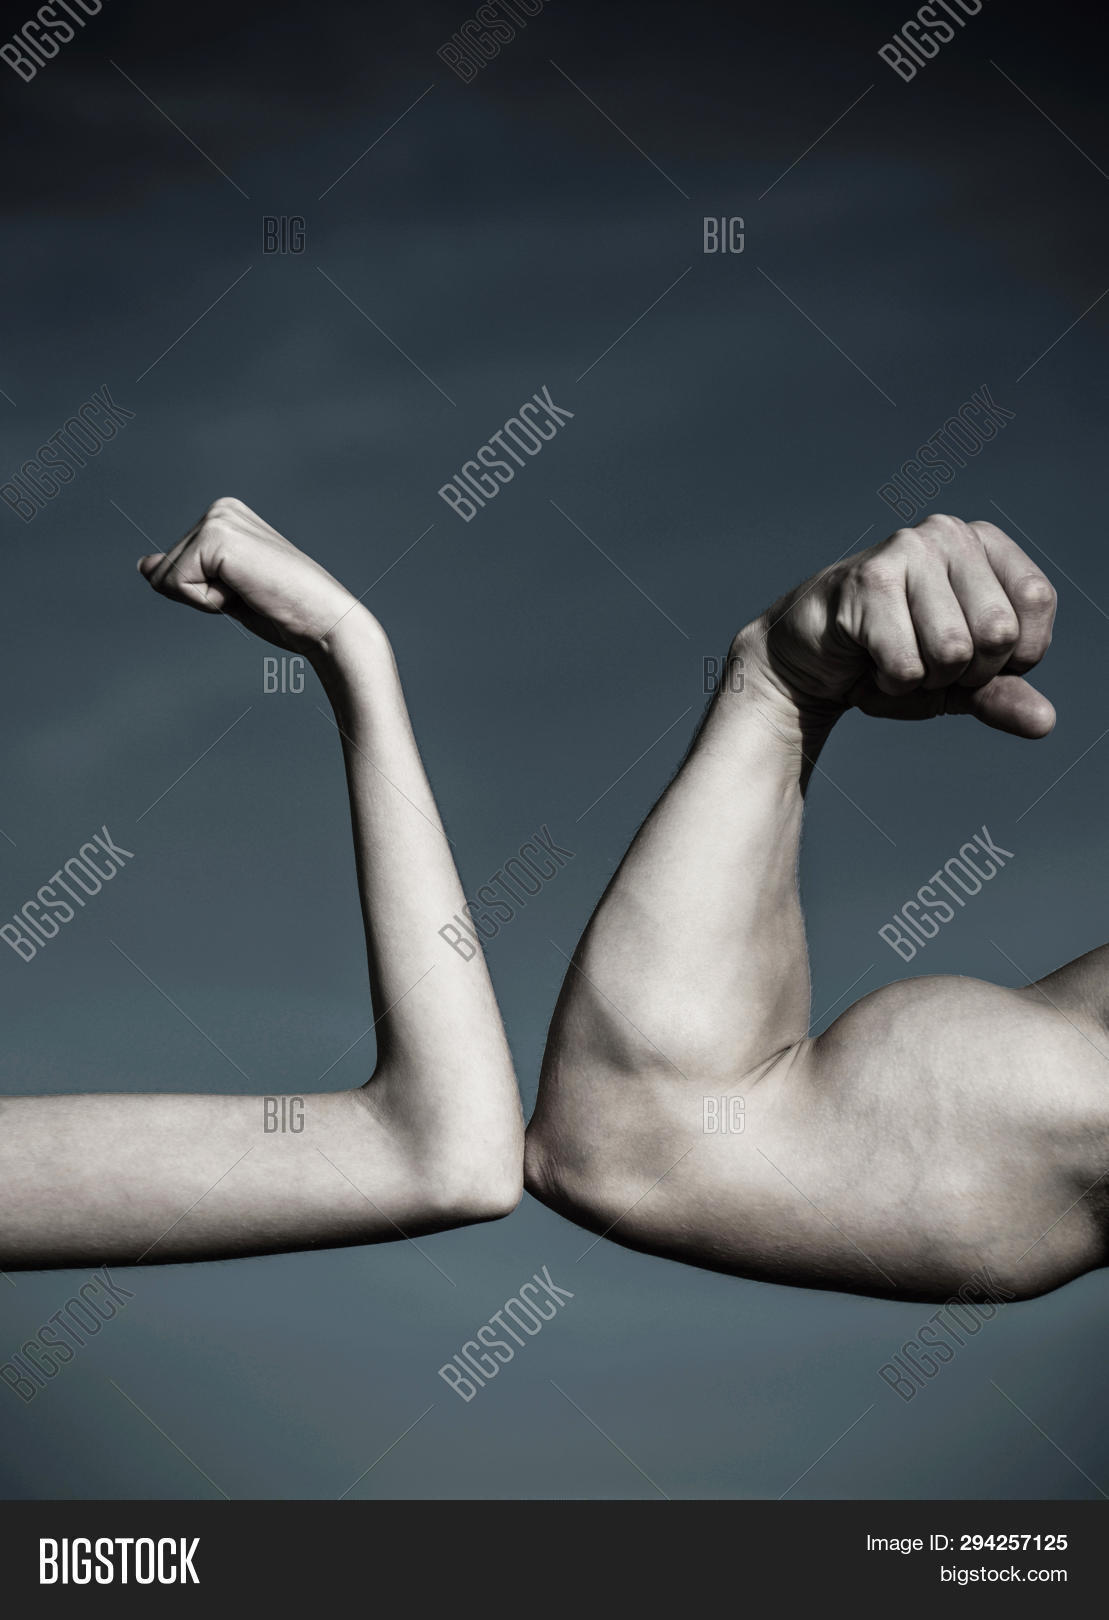 adult,aggression,aggressive,arm,athlete,athletic,battle,bicep,bodybuilder,challenge,closeup,compete,competitor,concept,conflict,fight,gesturing,hand,health,male,man,muscle,muscled,muscular,rival,rivalry,scramble,sport,strength,strong,struggle,team,two,victory,vs,weak,wrestle,wrestling,wrist